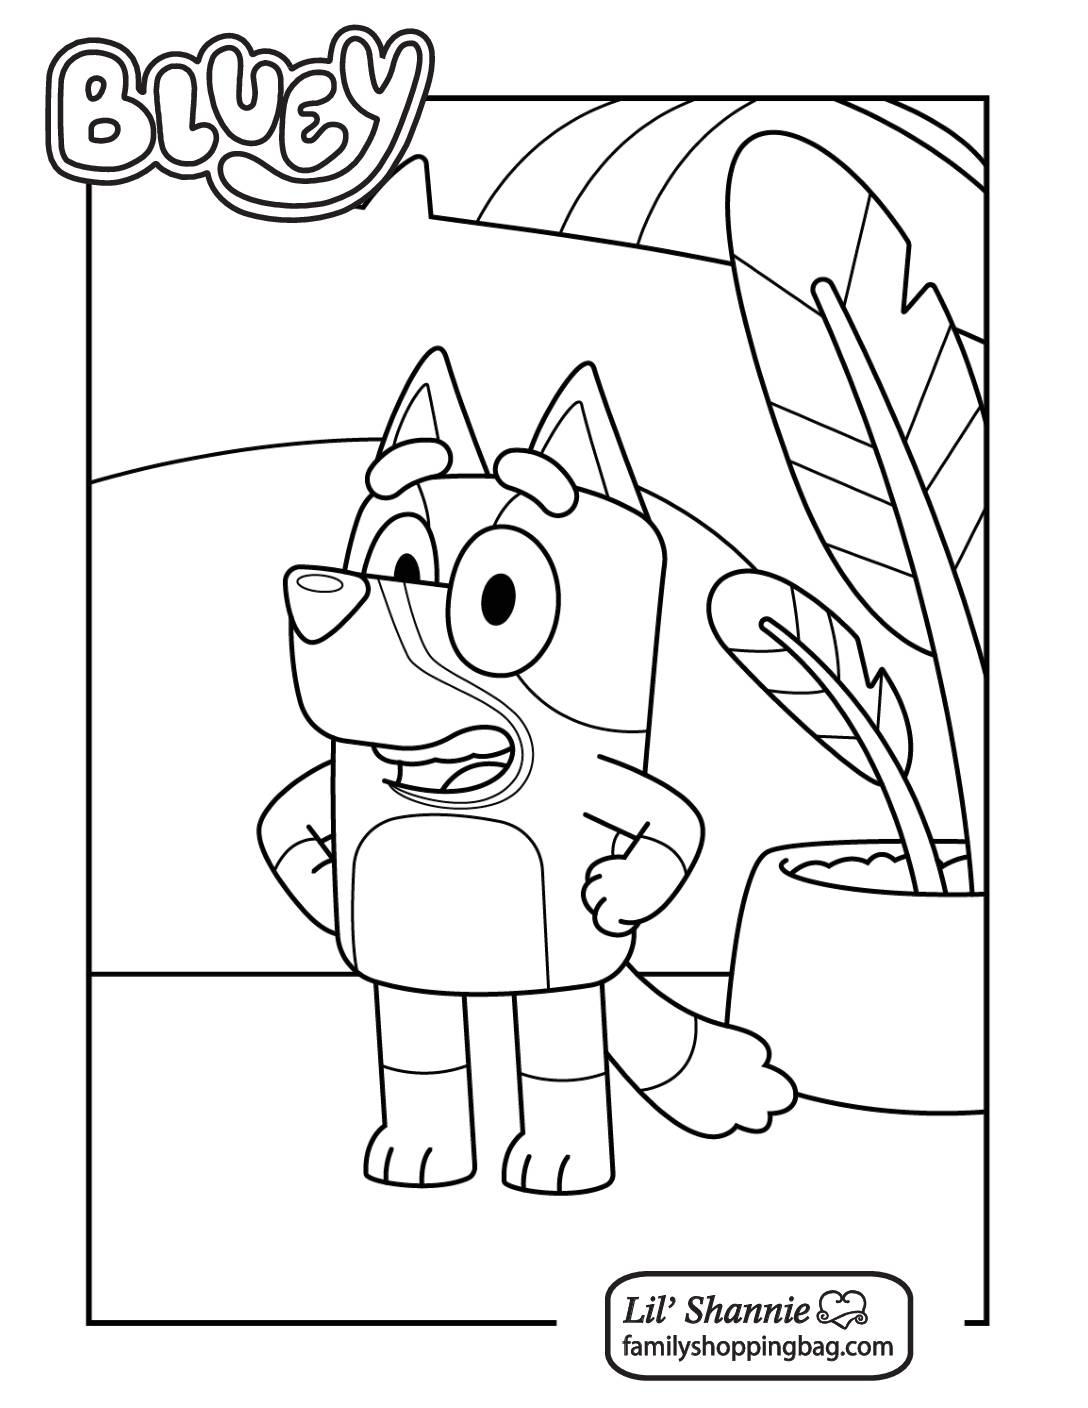 Coloring Page 3 Bluey